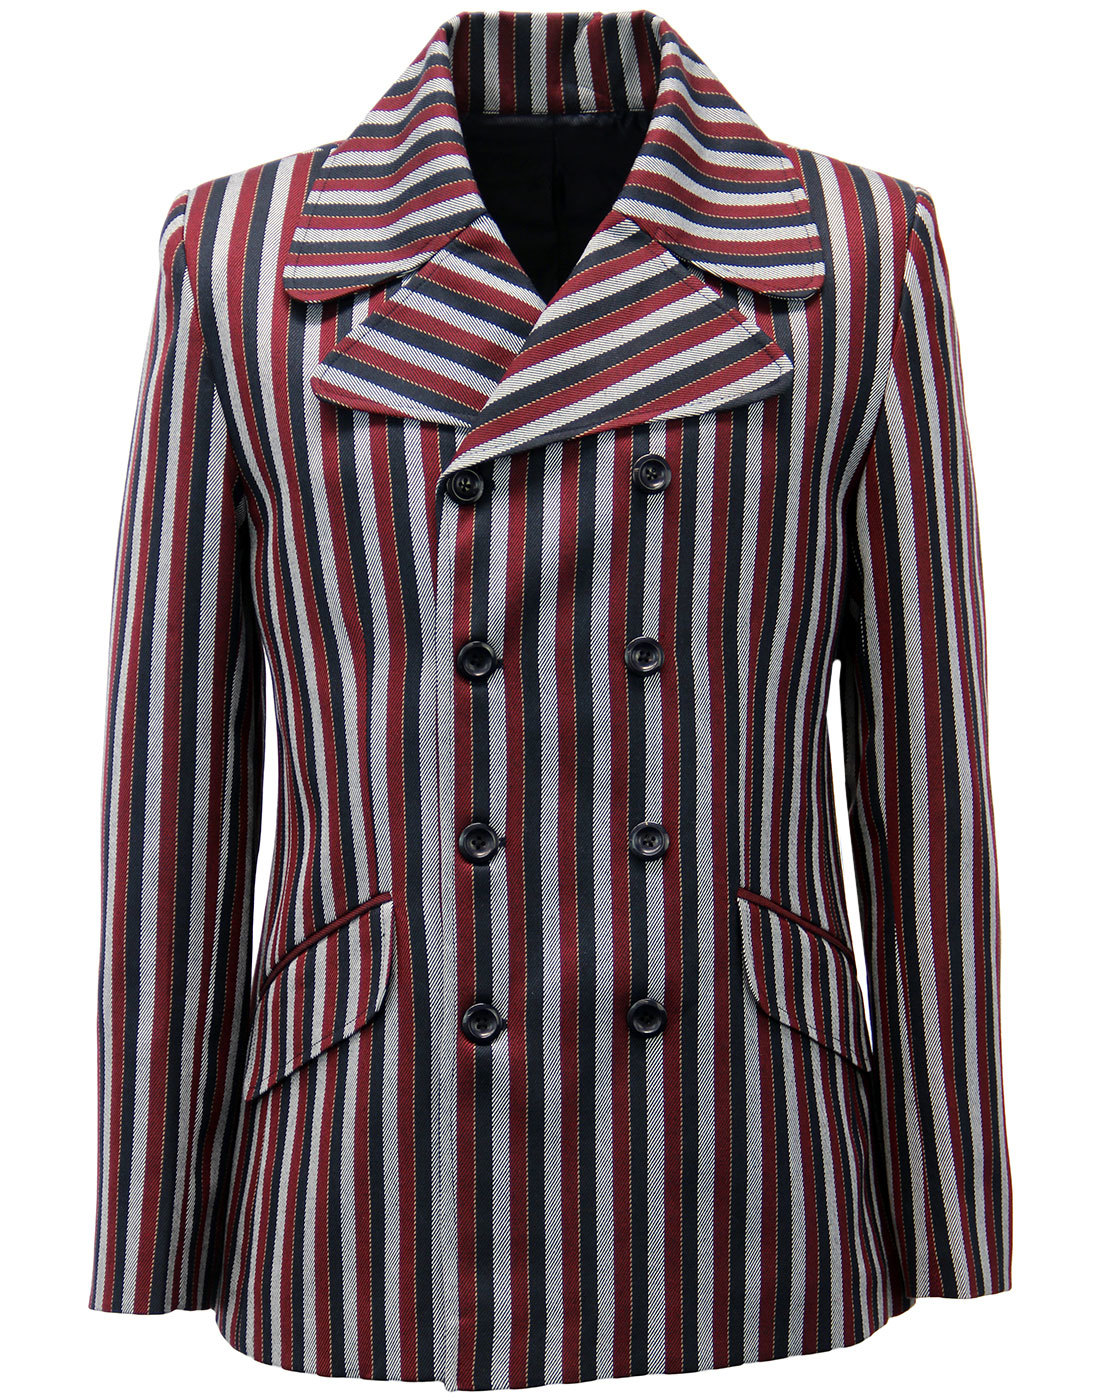 Tampa MADCAP ENGLAND Mod Double Breasted Blazer